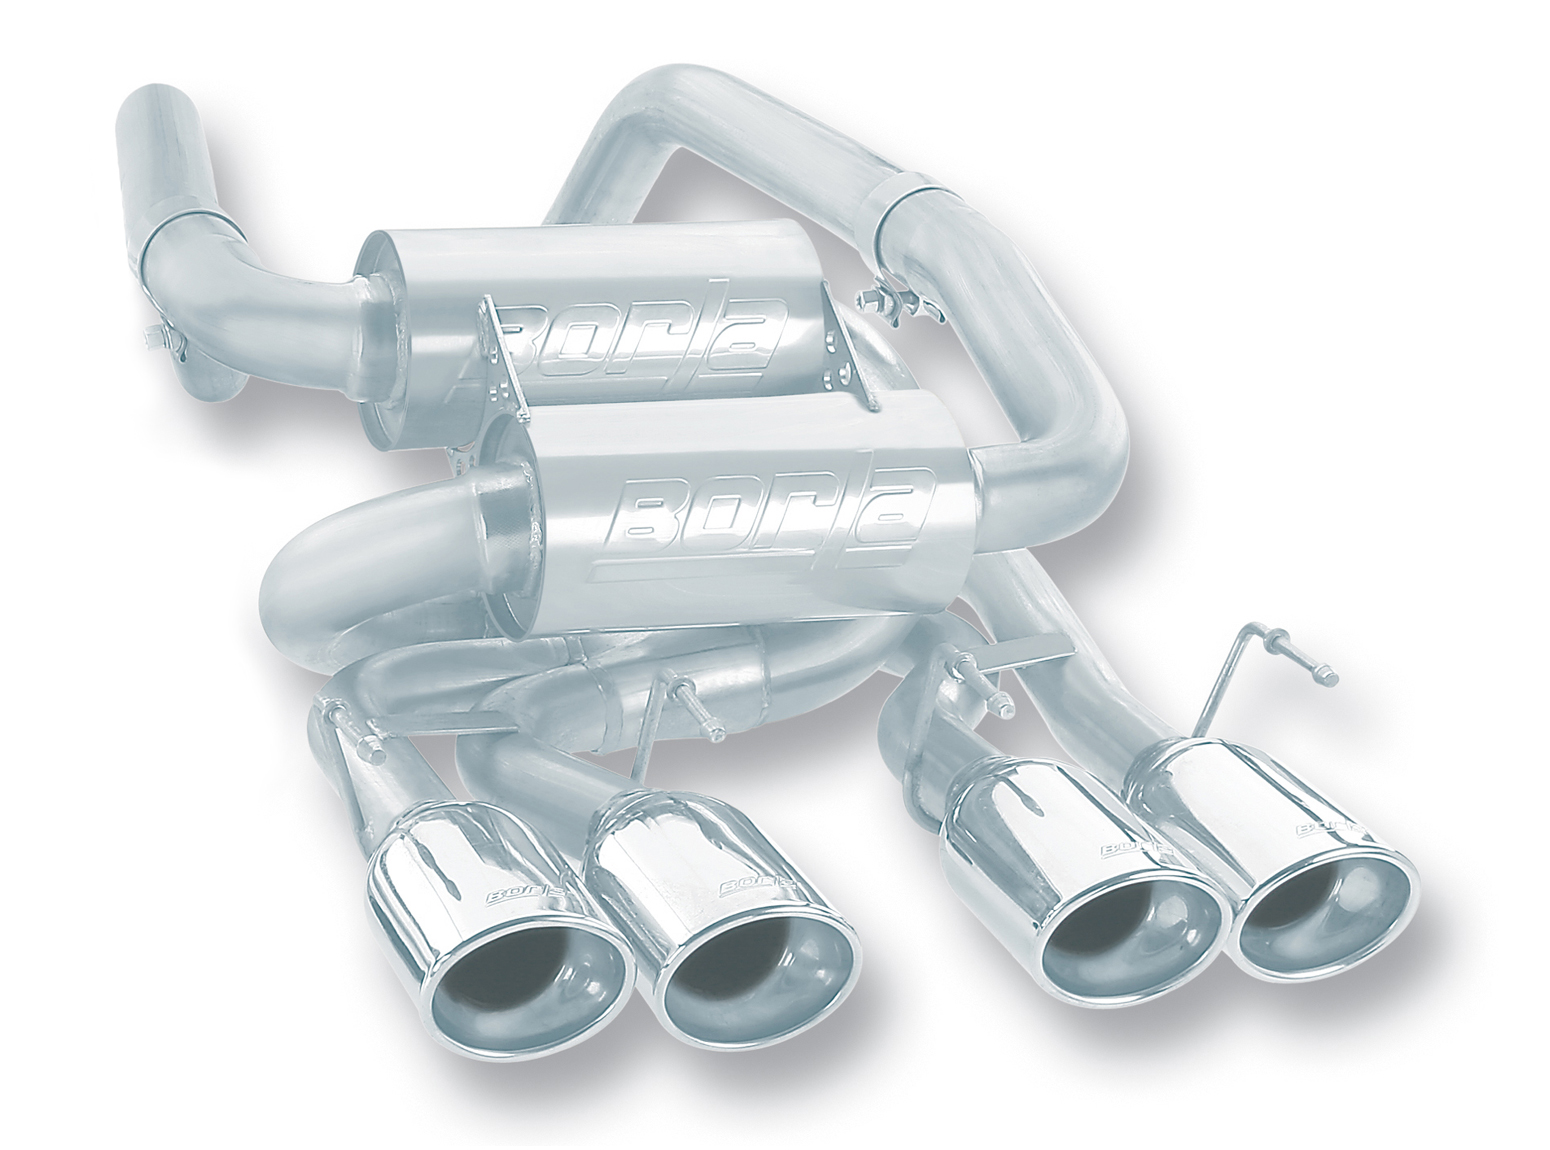 Borla Corvette C6 2009 Exhaust